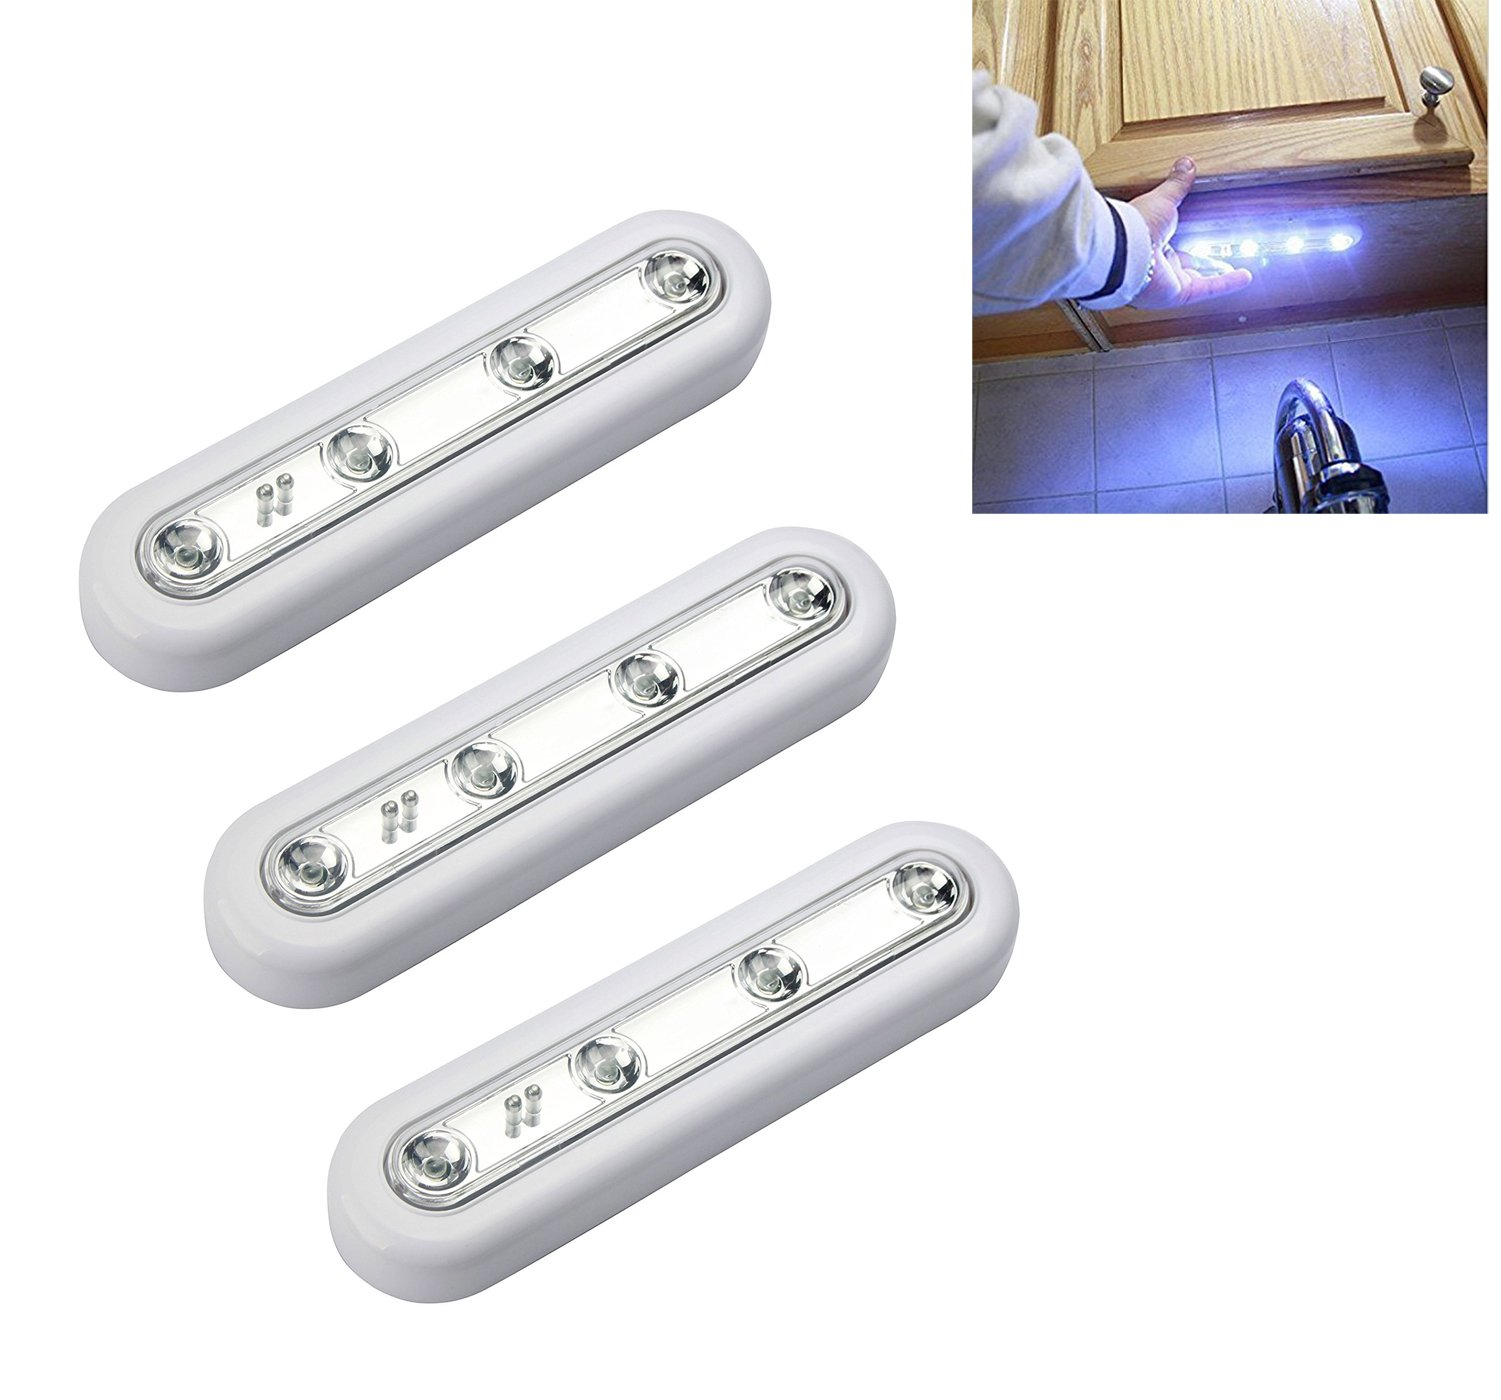 [New Generation] Ilyever Set of 3 Touch-Activated Stick-on Super Bright 4-Led Battery-0perated Touch Tap Light for Attic Basement Garage Cellar Path Stairs